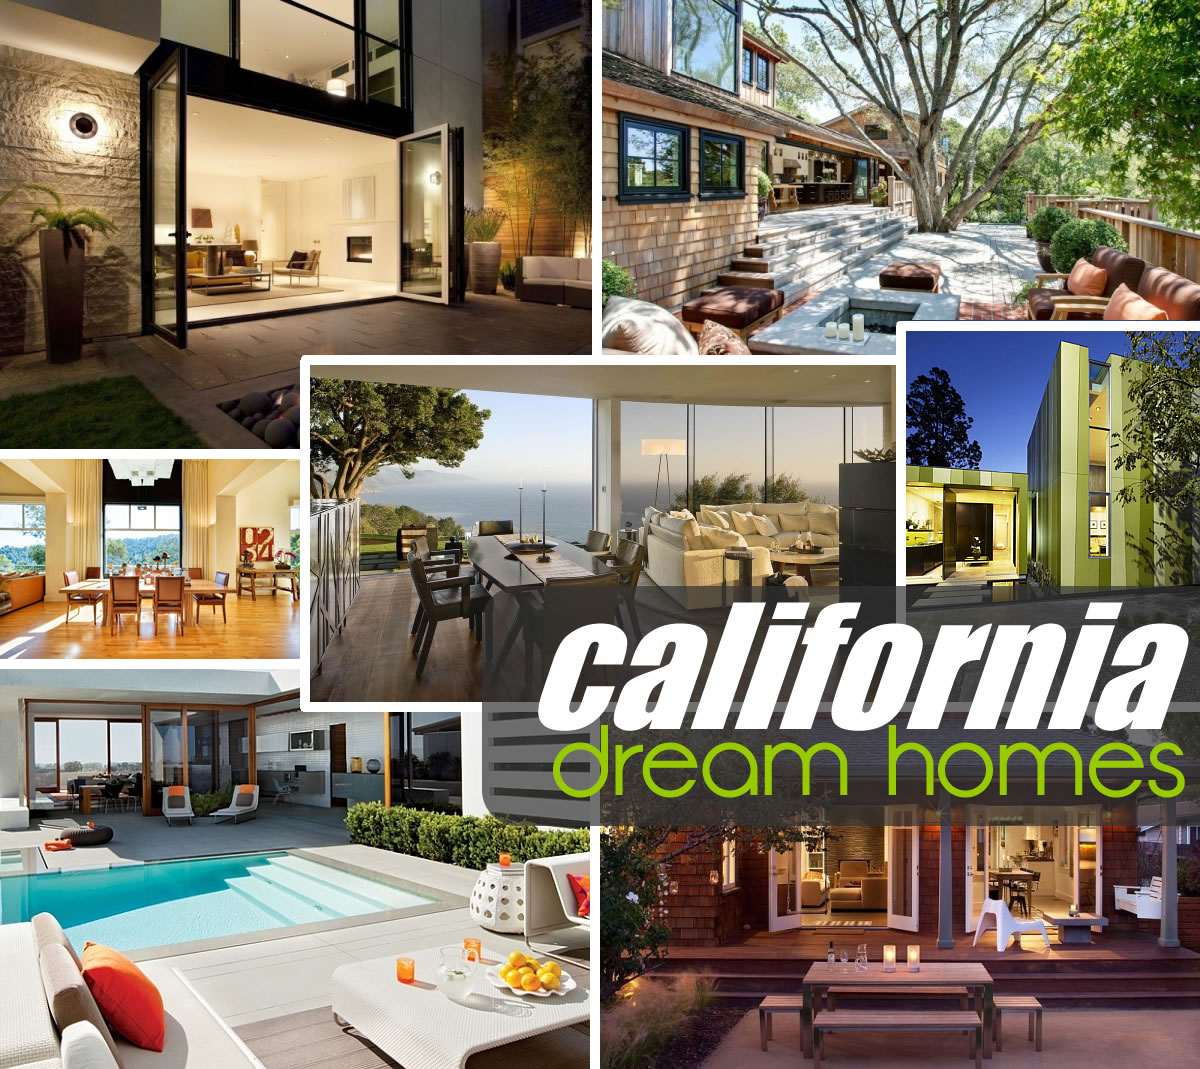 california dream homes California Dream Homes: Sheer Beauty and Stunning Designs For Your Inspiration